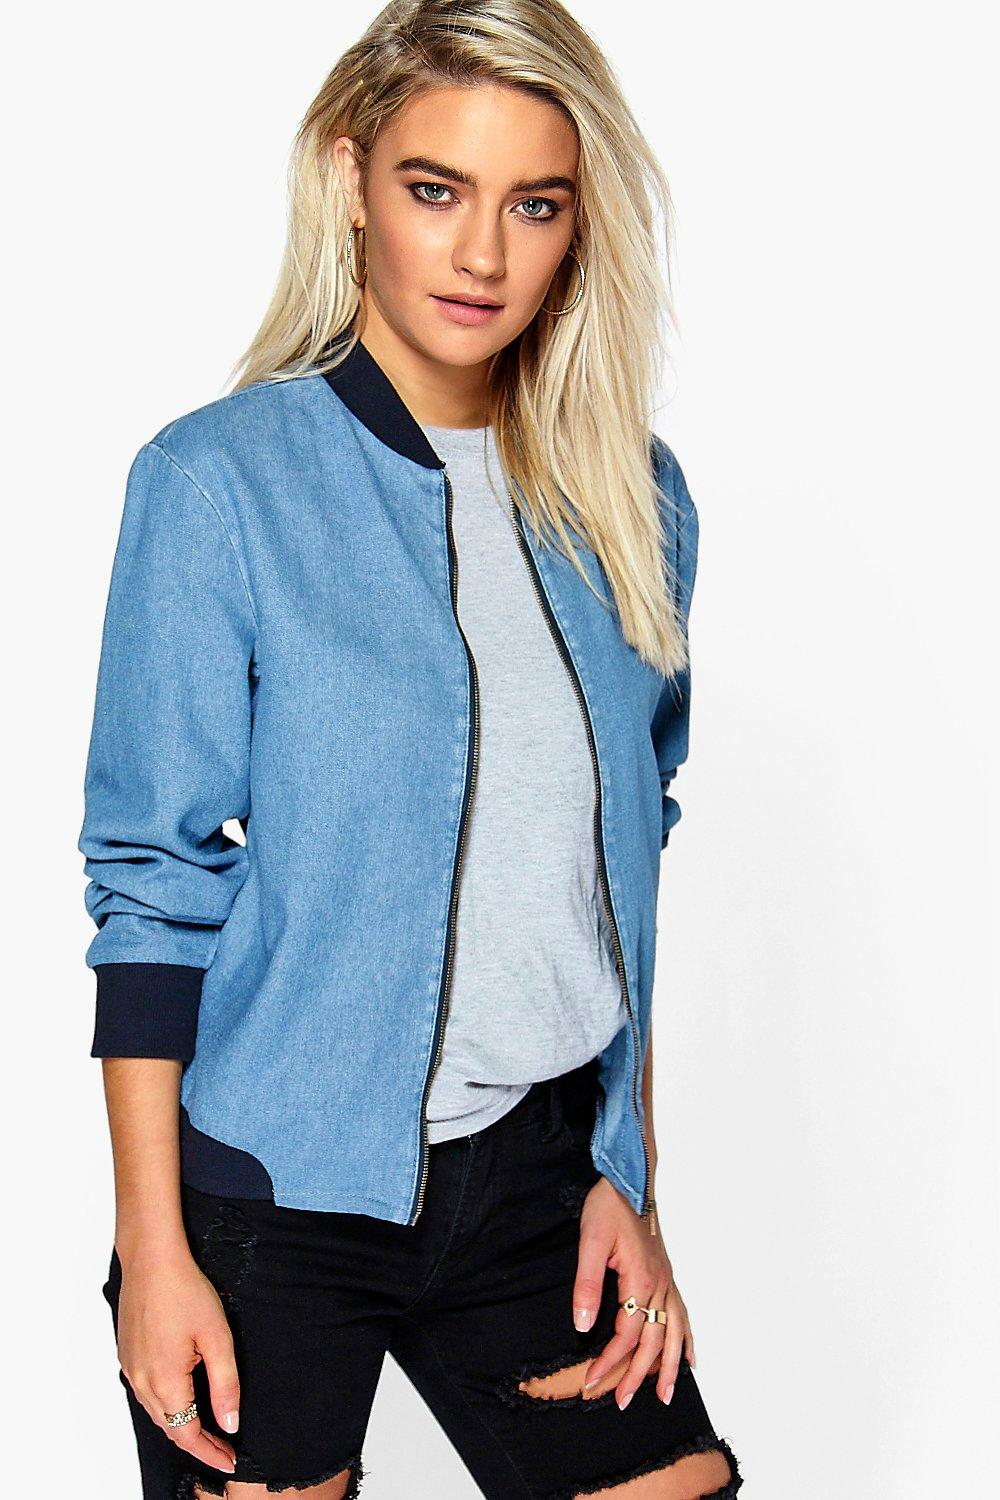 Katie Light Weight MA1 Denim Bomber